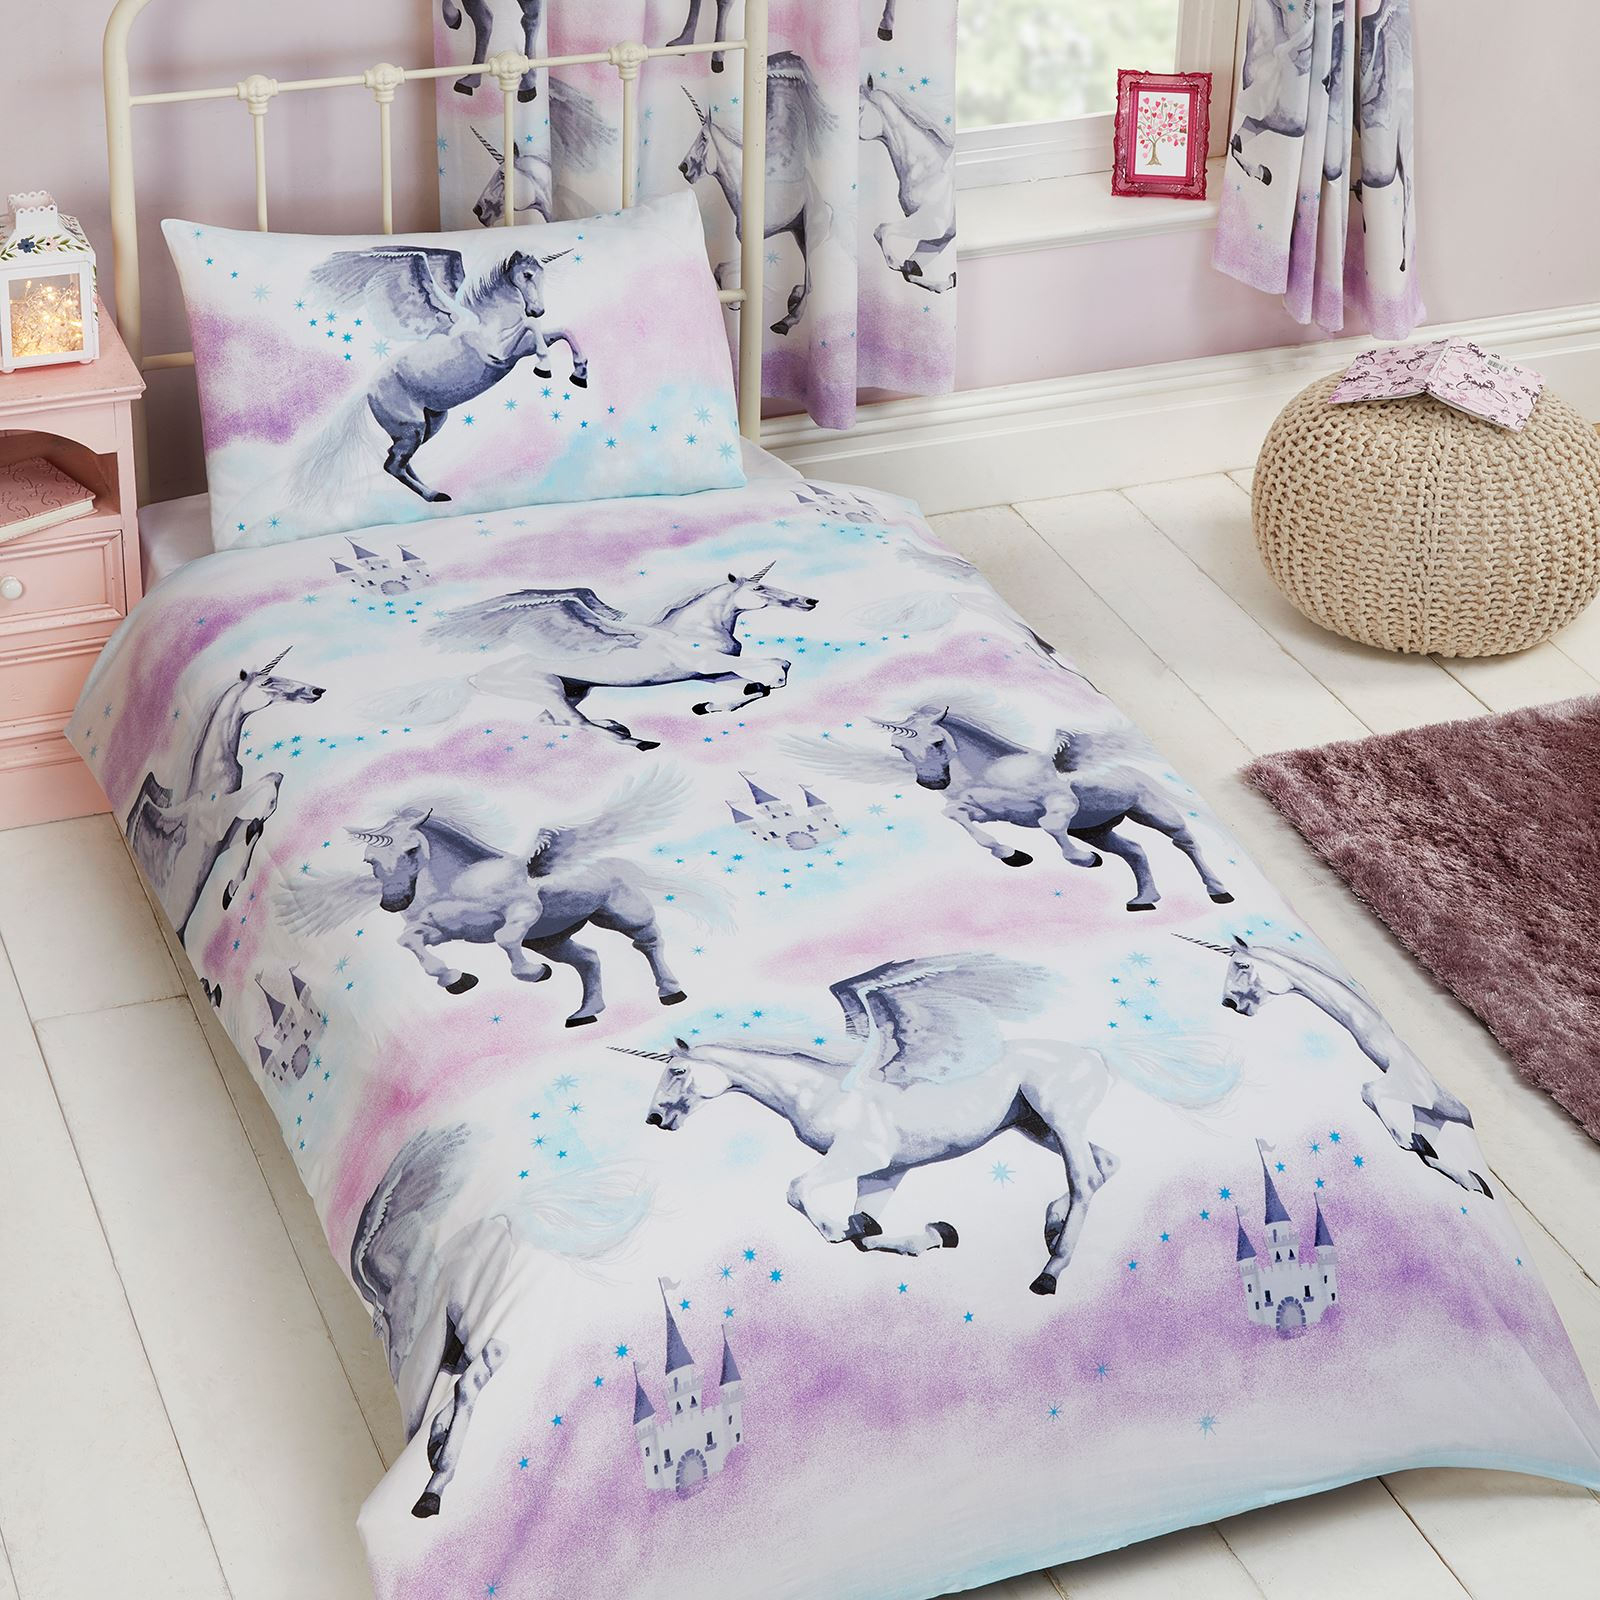 Single Doona Cover Kids Girls Boys Matching Duvet Cover Sets Single Double